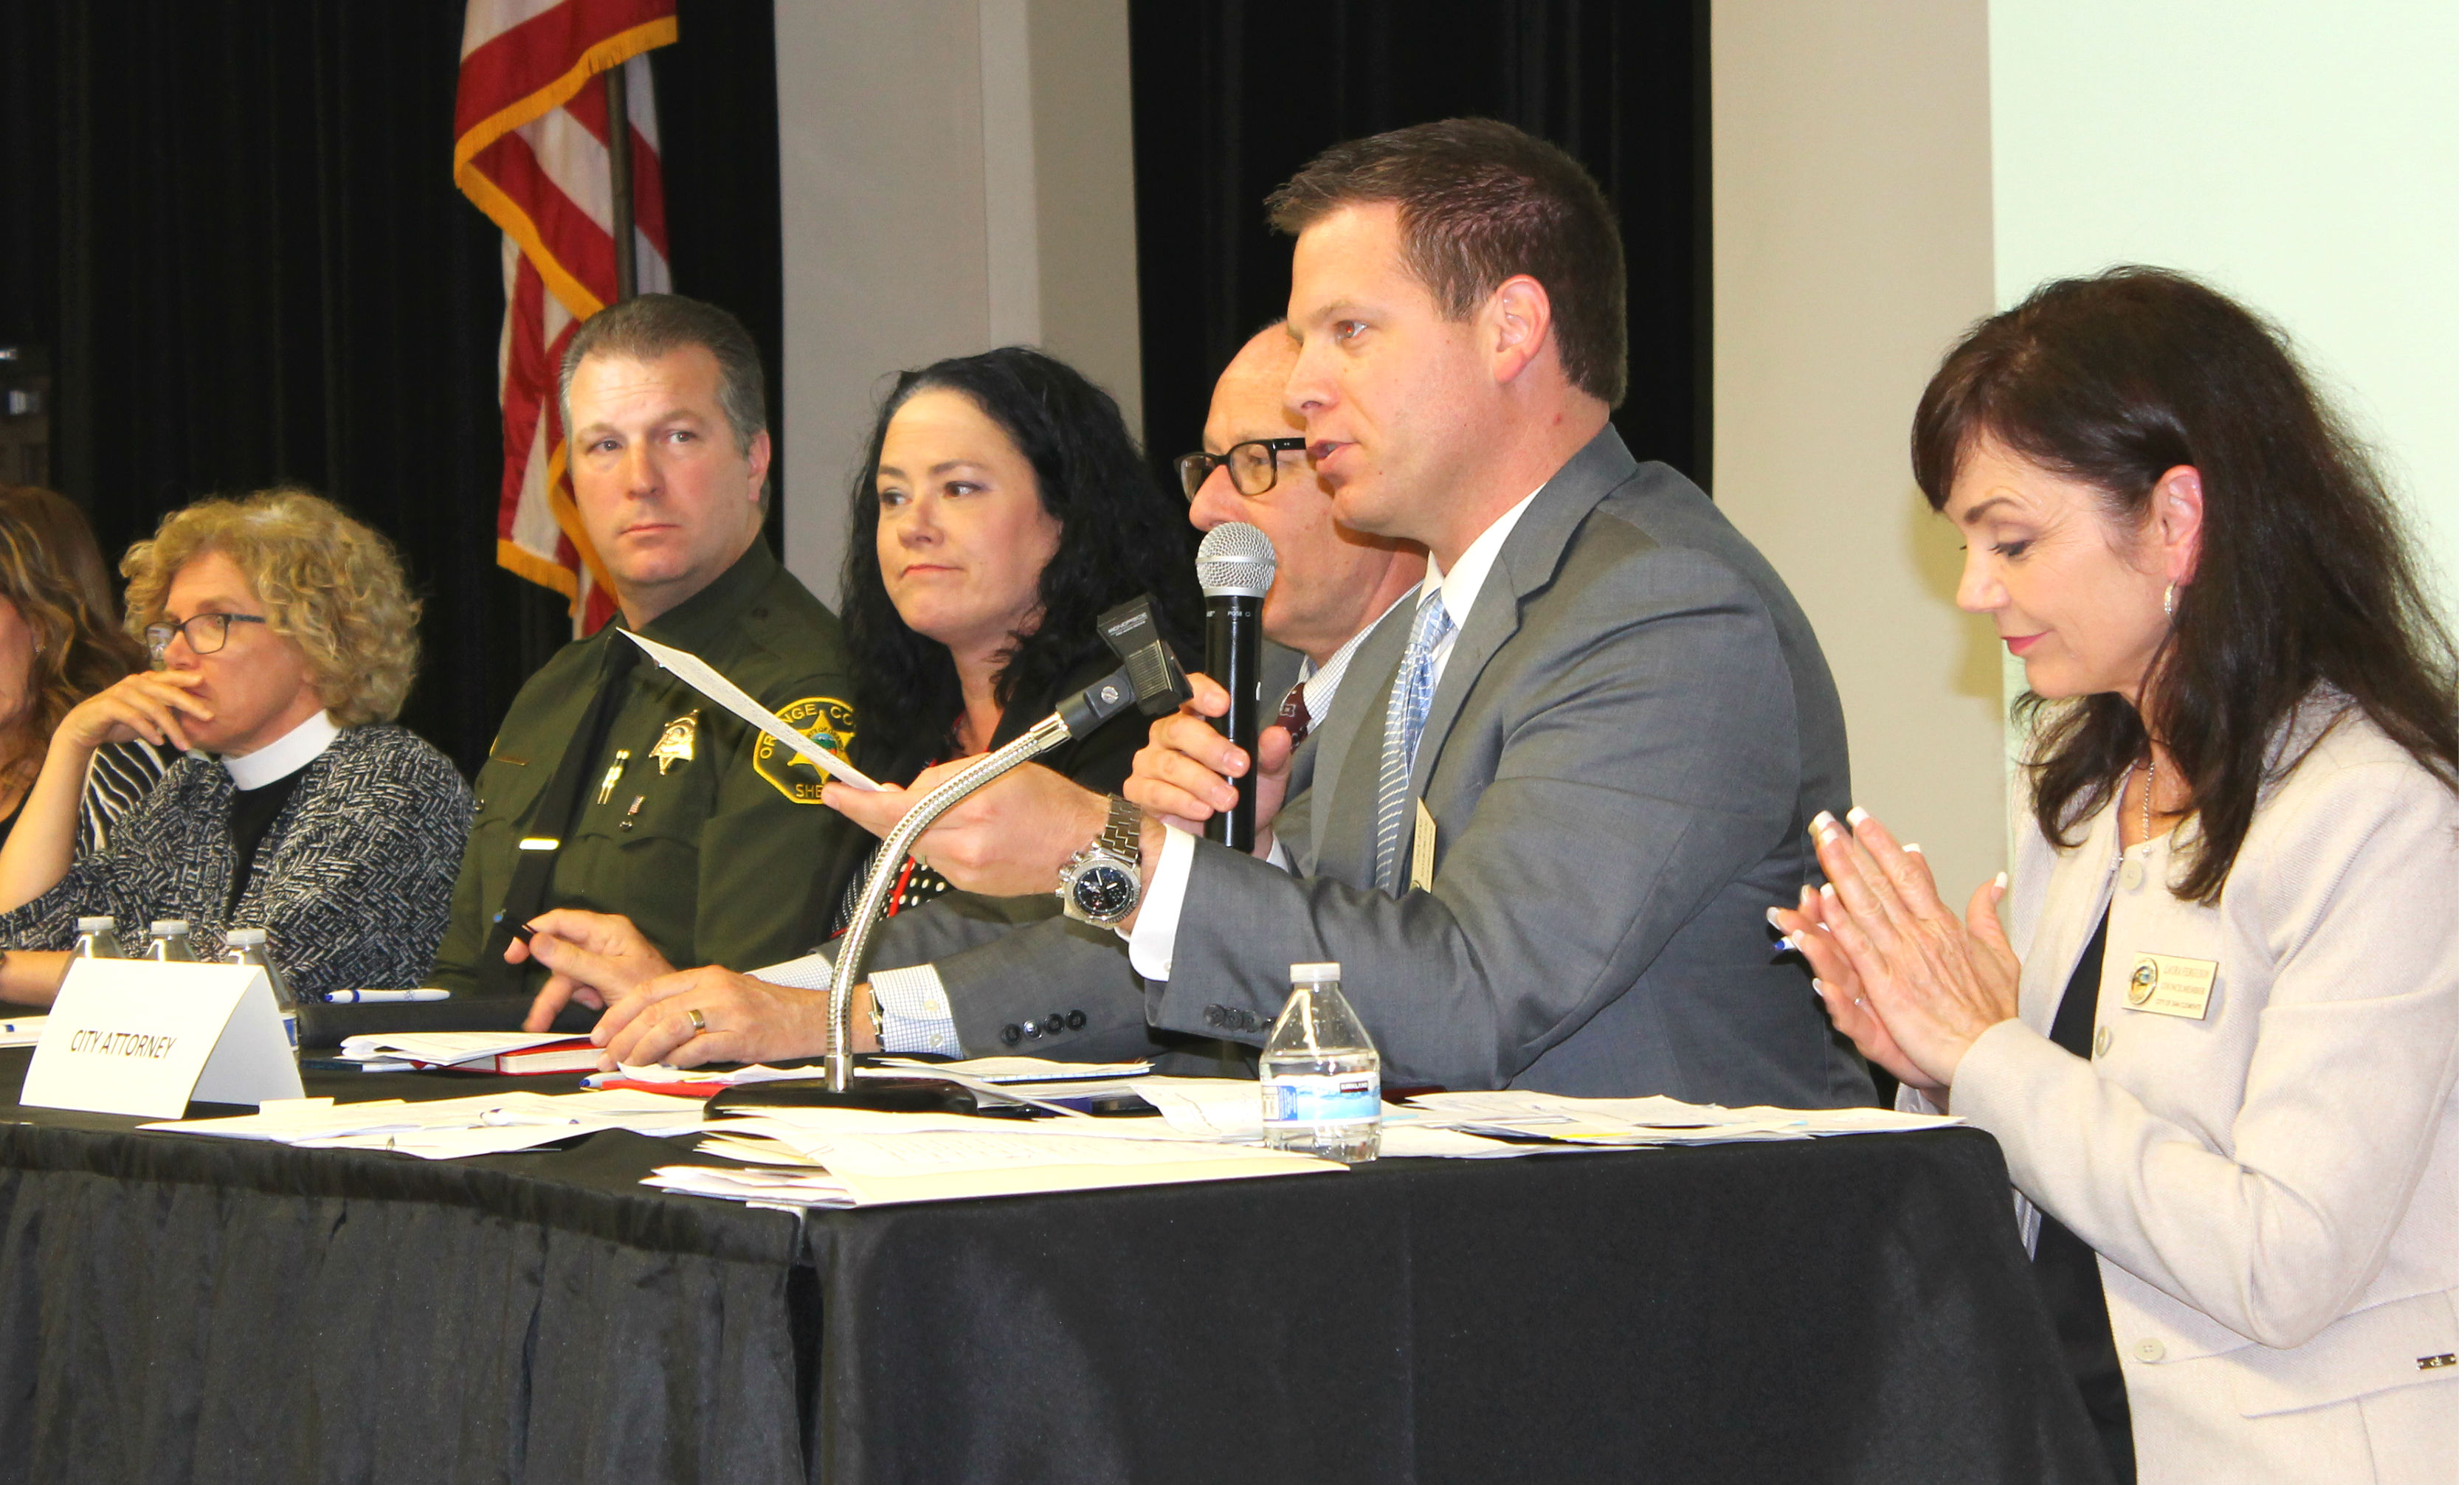 Panelists deliver individual presentations at a Town Hall meeting in San Clemente on June 13, and take questions from a roomful of residents on the topic of homelessness. Photo: Cari Hachmann